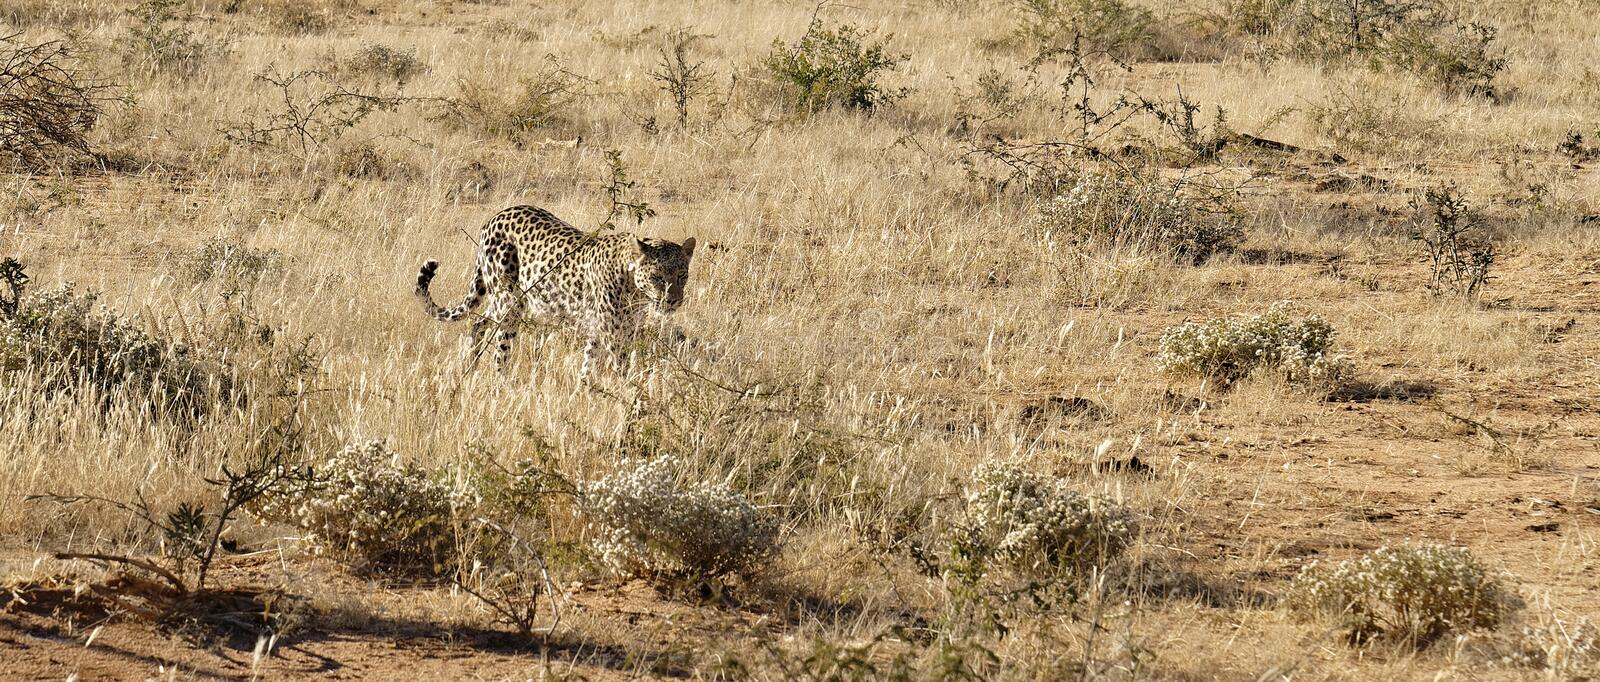 African leopard approaches through dry grass in bright early morning sunlight at Okonjima Nature Reserve, Namibia. Elusive and secretive spotted African leopard stock images